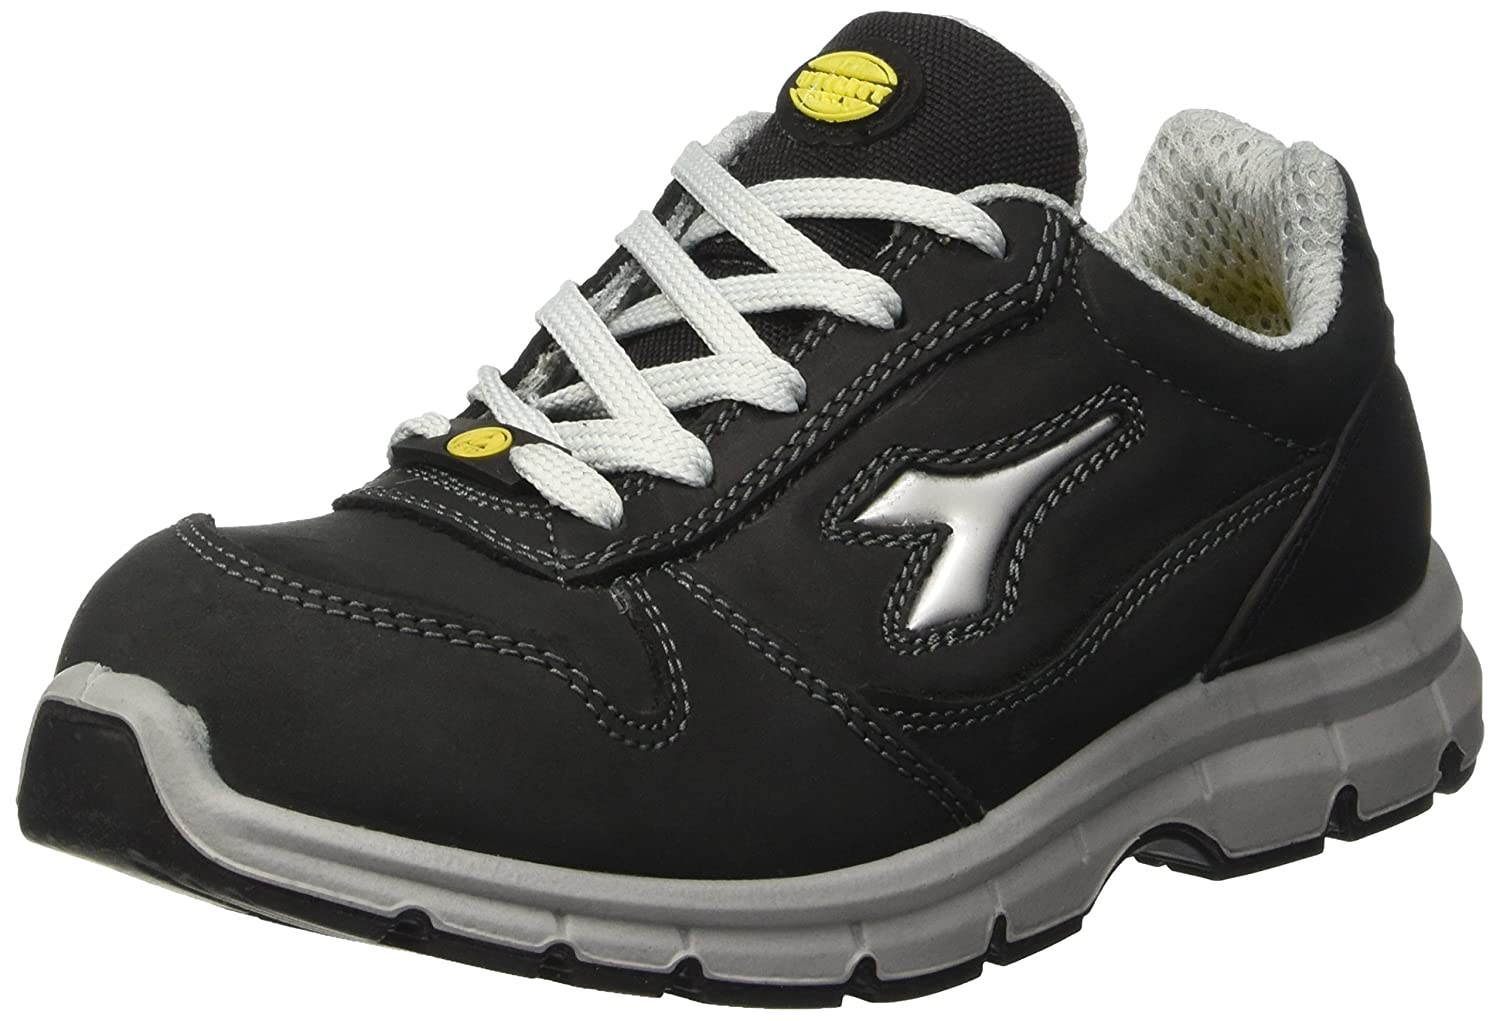 Diadora Unisex de adultos Run ESD Low zapatos de seguridad S3 701.159799